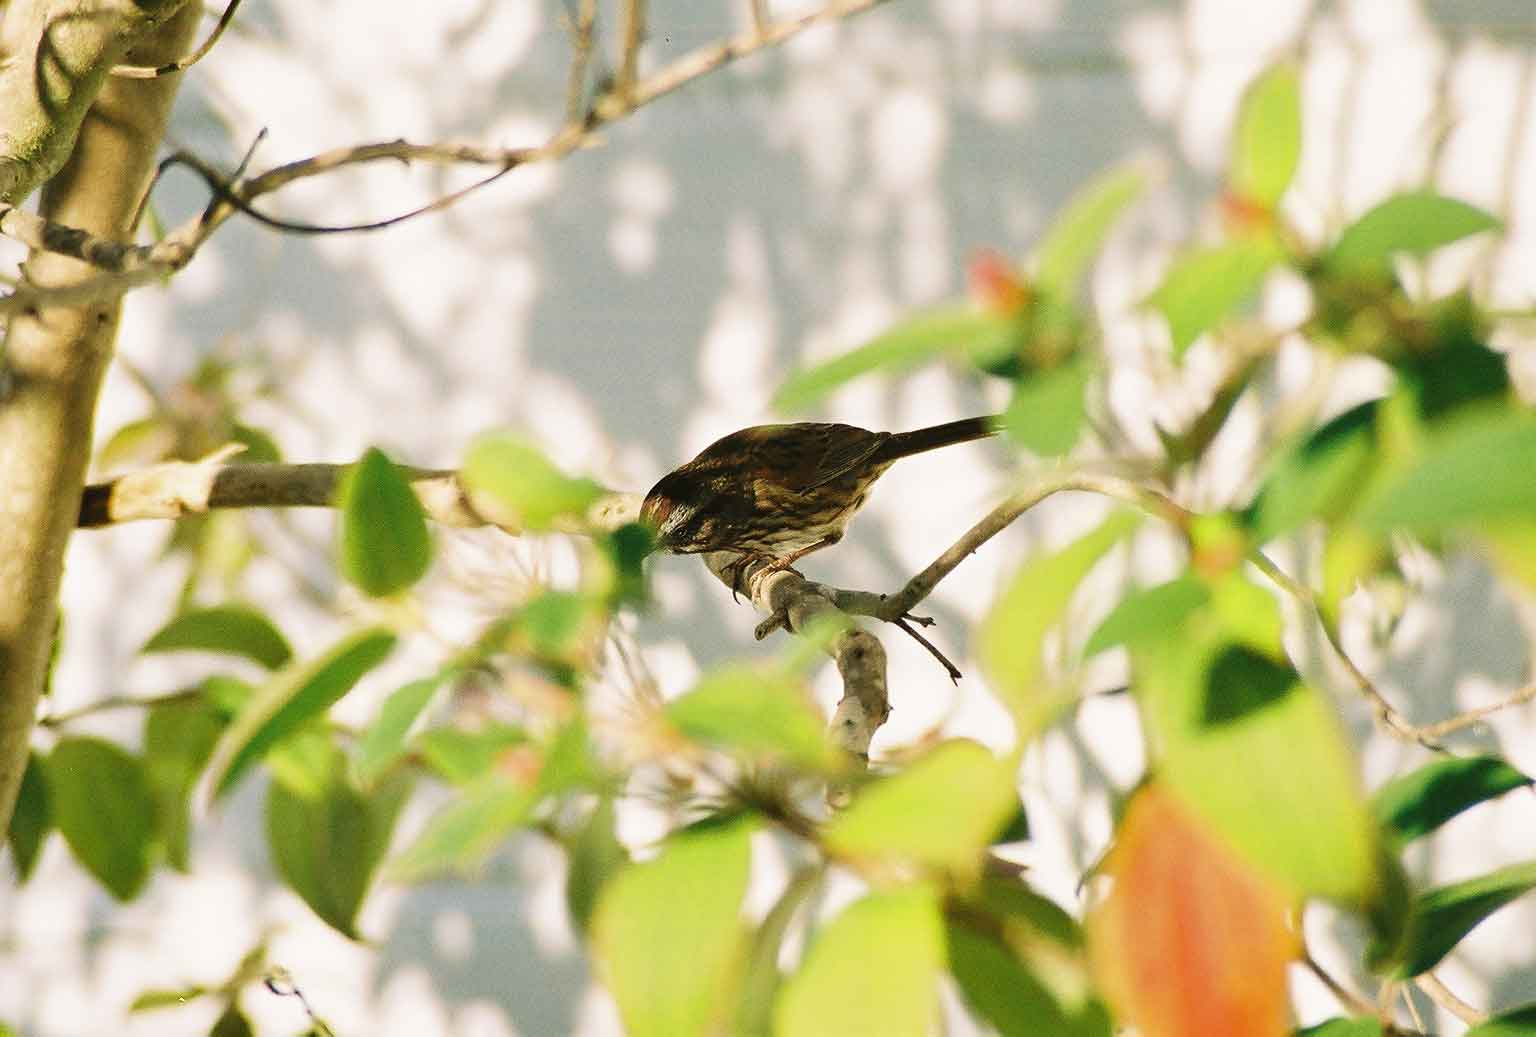 Sparrow in the tree